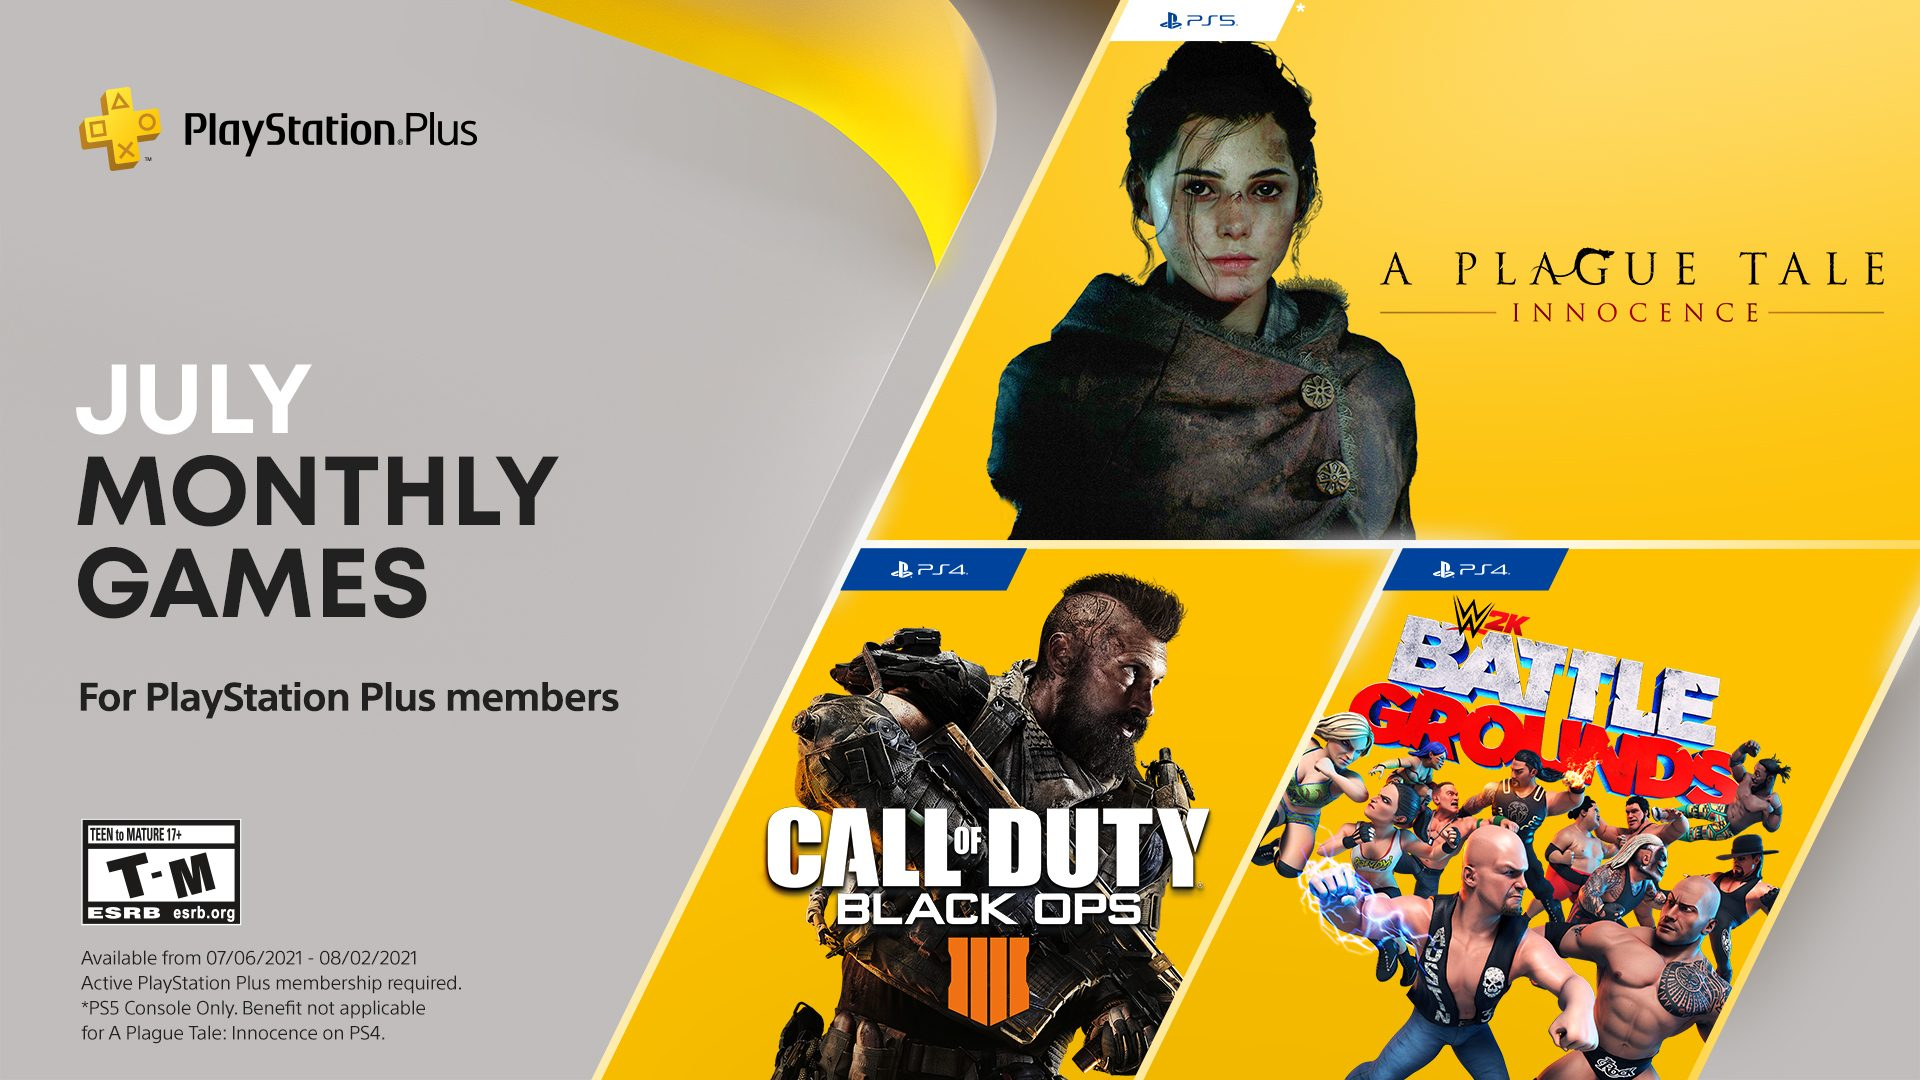 playstation-in-addition-video-games-for-july:-connect-with-of-duty:-black-ops-four,-wwe-2k-battlegrounds,-a-plague-tale:-innocence